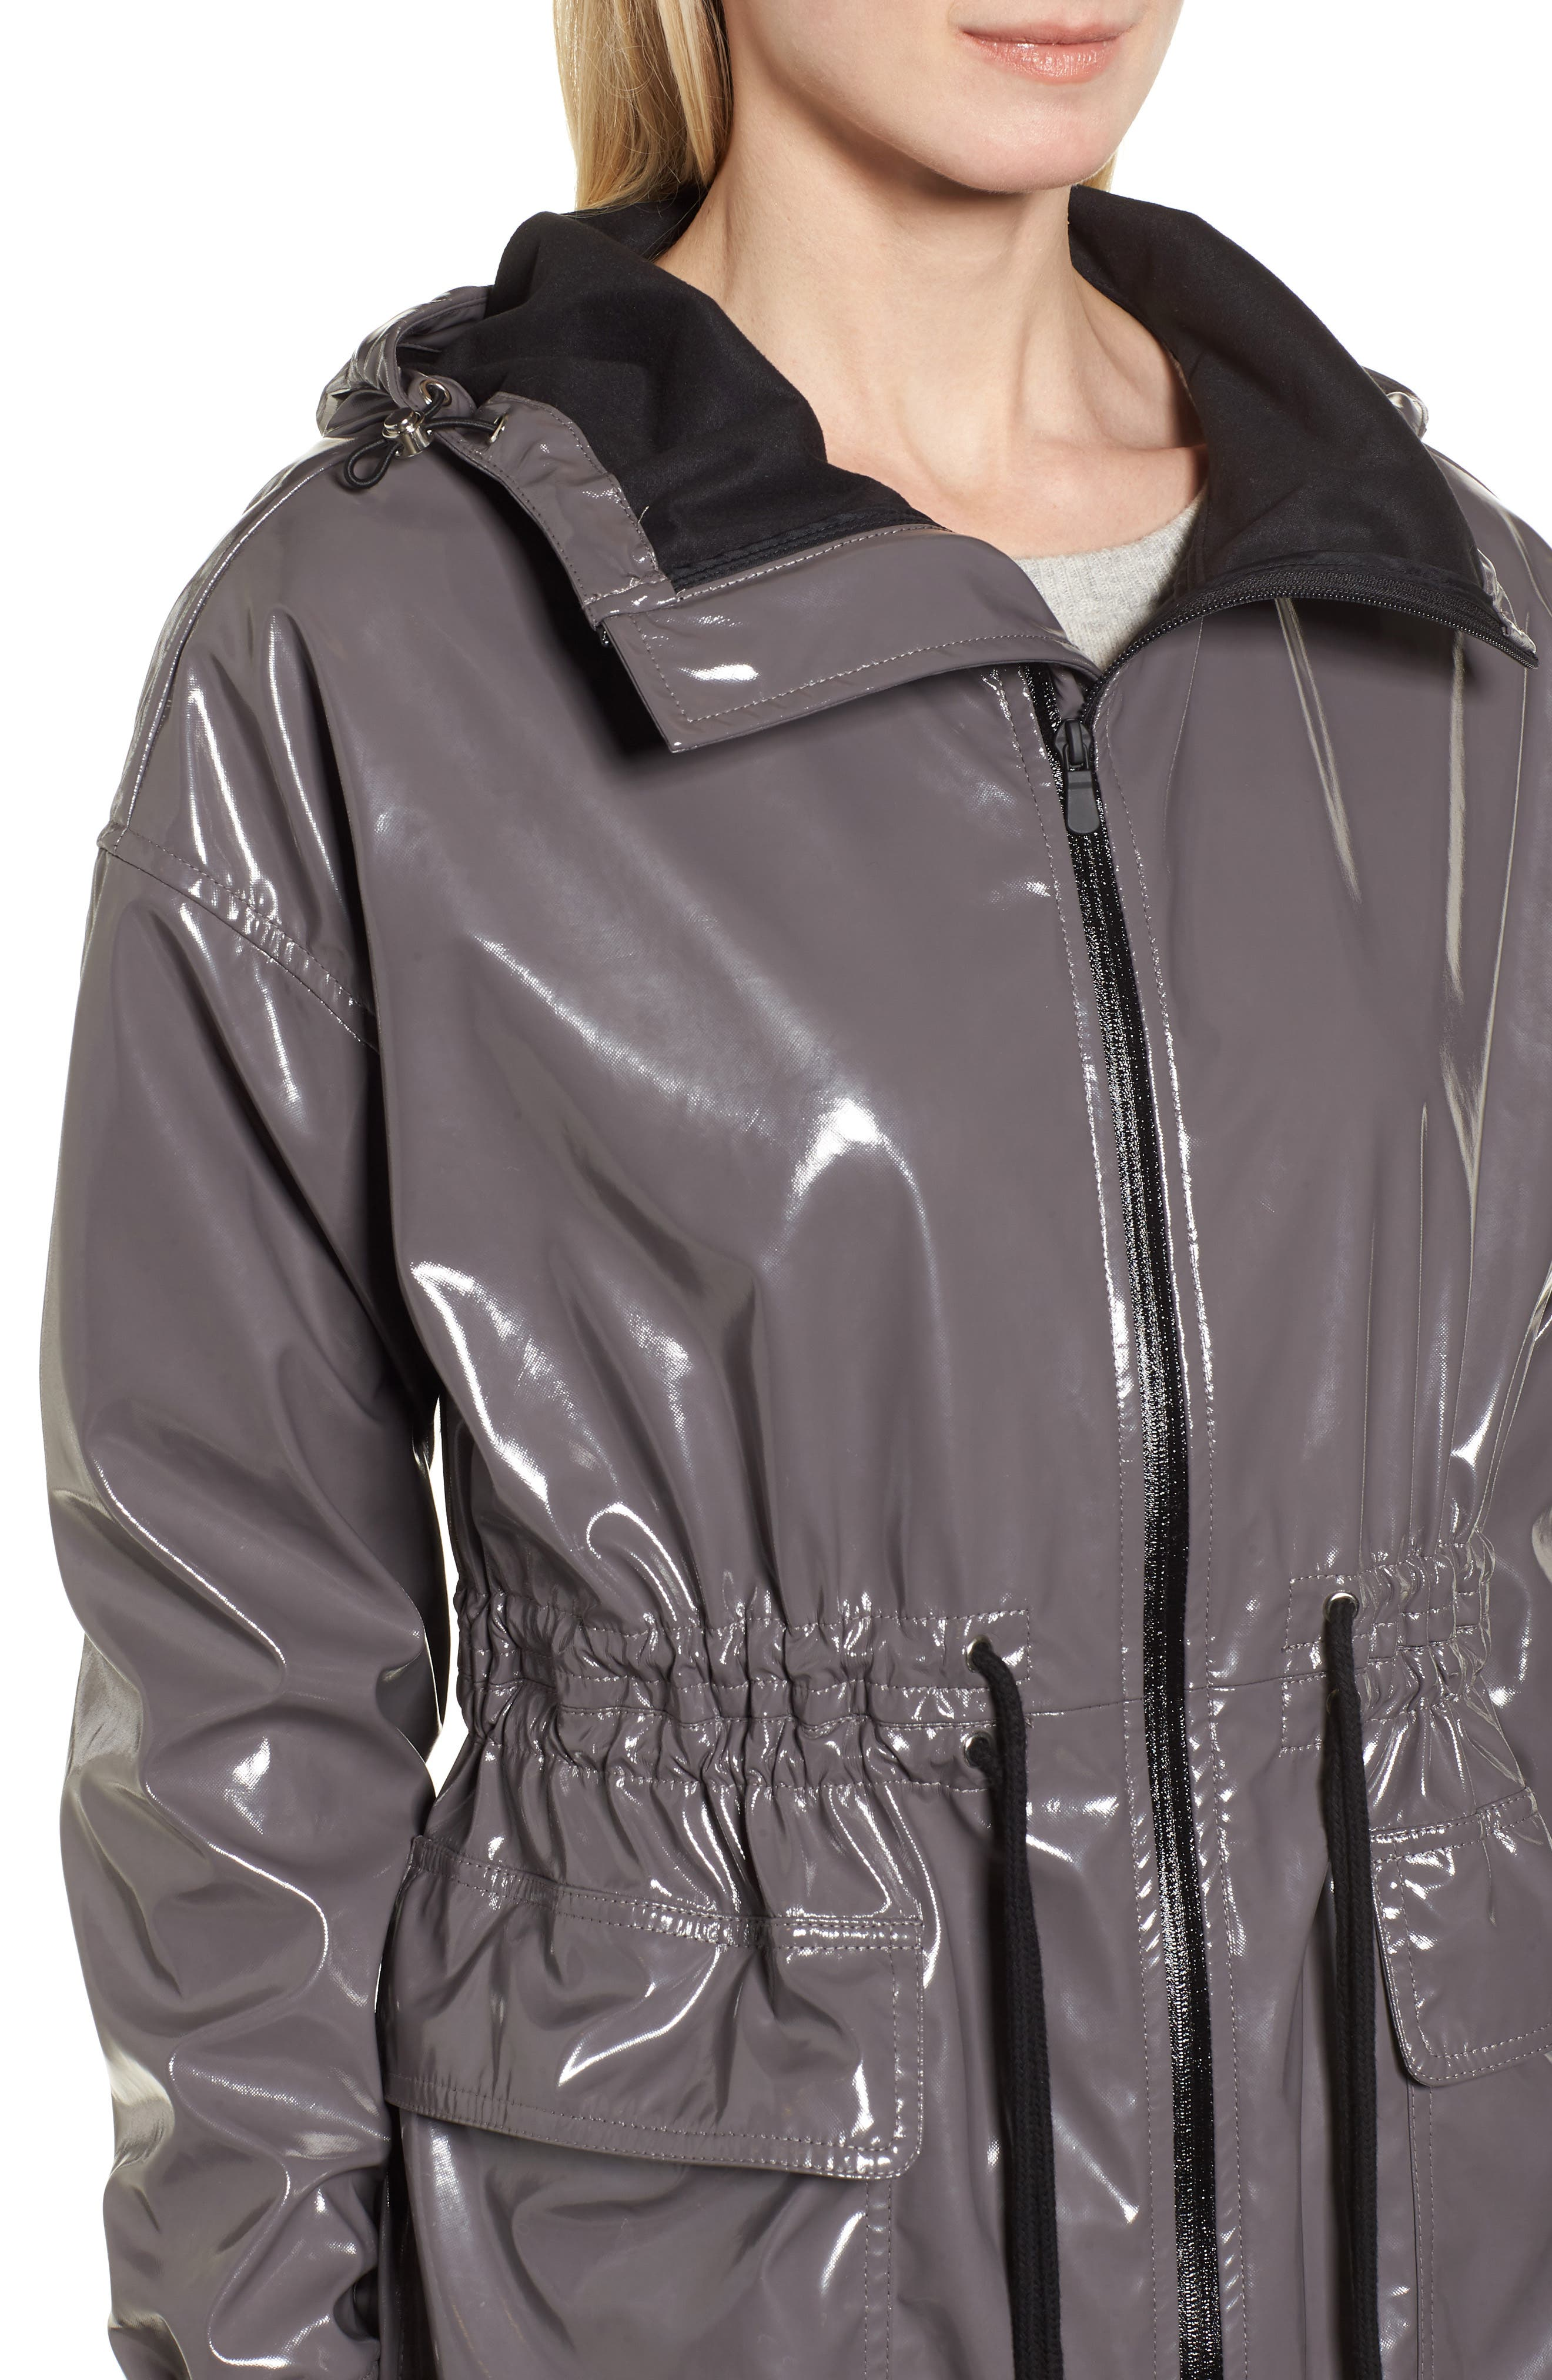 Fawn Patent Hooded Raincoat,                             Alternate thumbnail 4, color,                             Steel